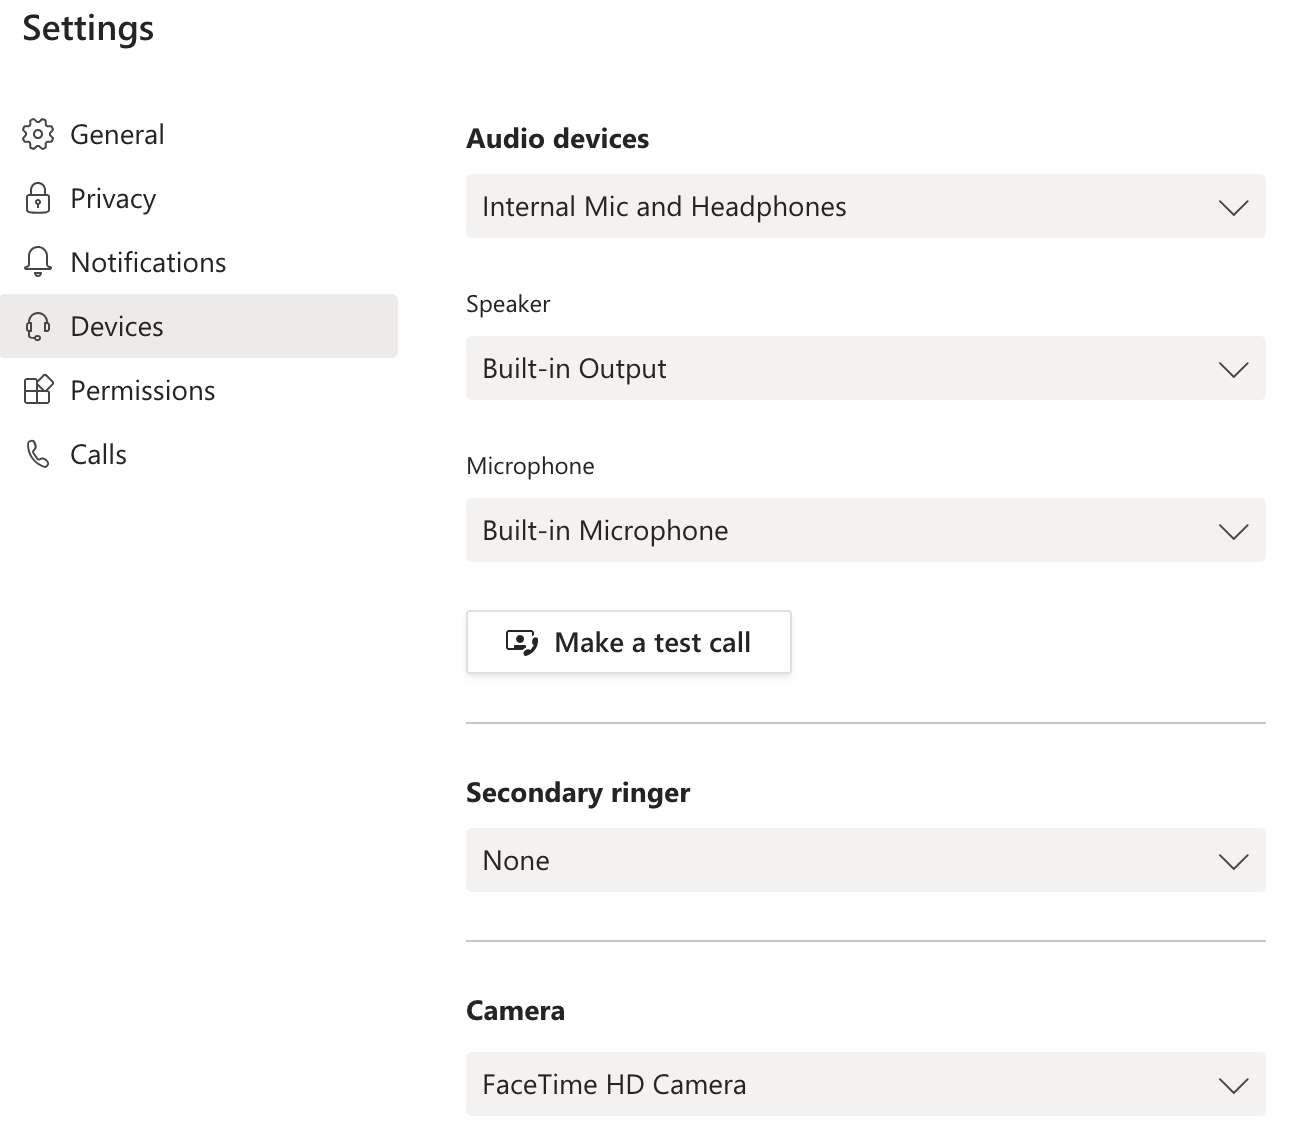 Screenshot of the Devices drop-down menus. Audio Devices, Secondary Ringer and Camera are listed as subsections.